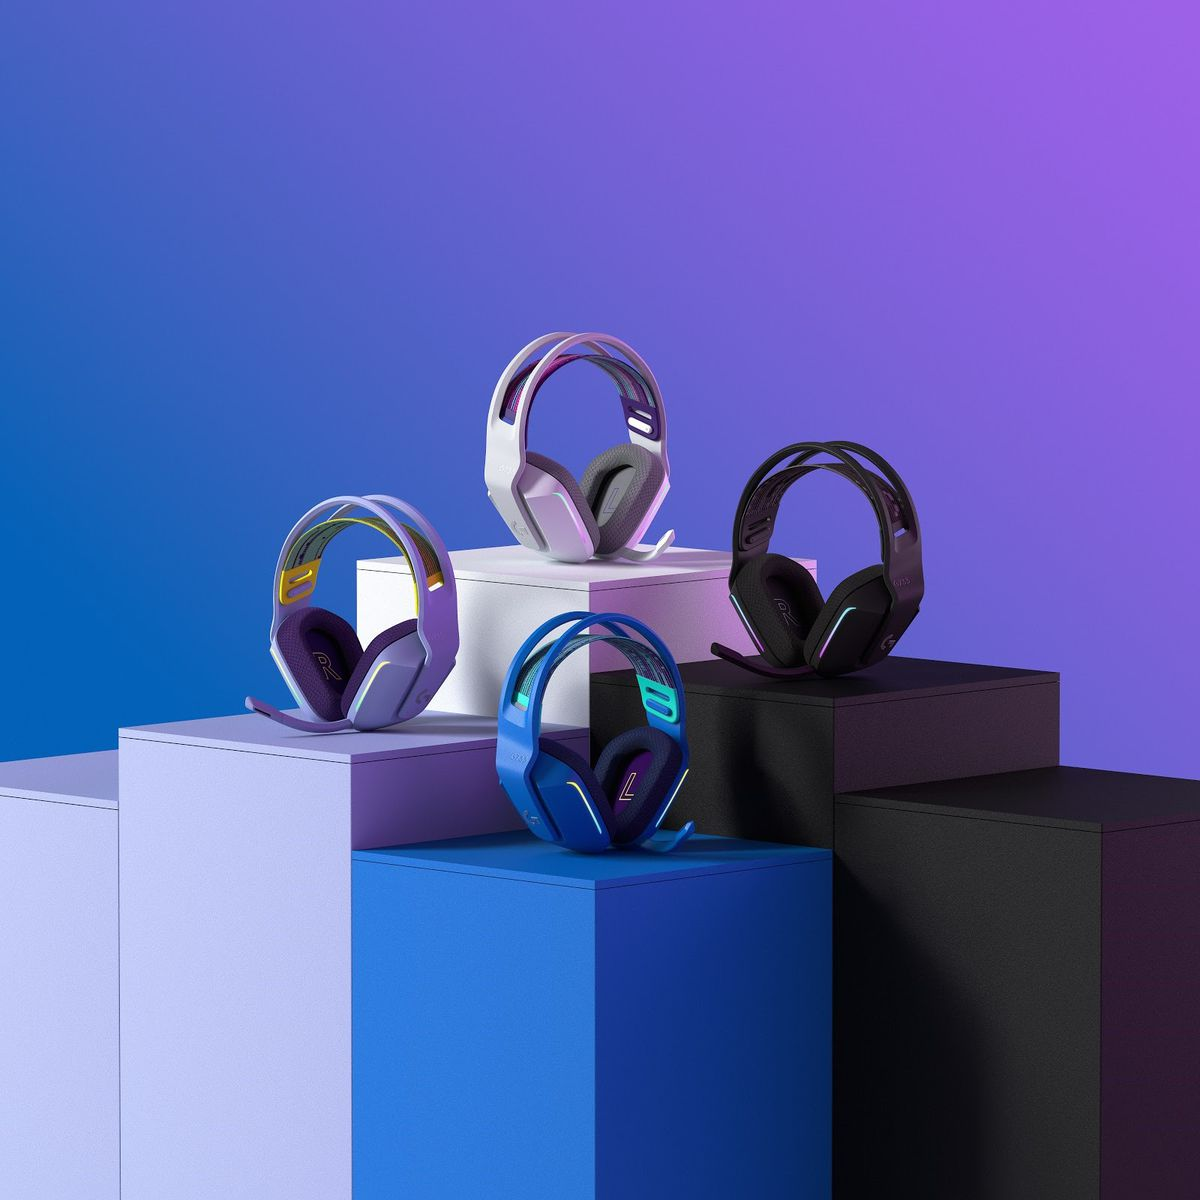 All four colors of the Logitech G733 headset on columns